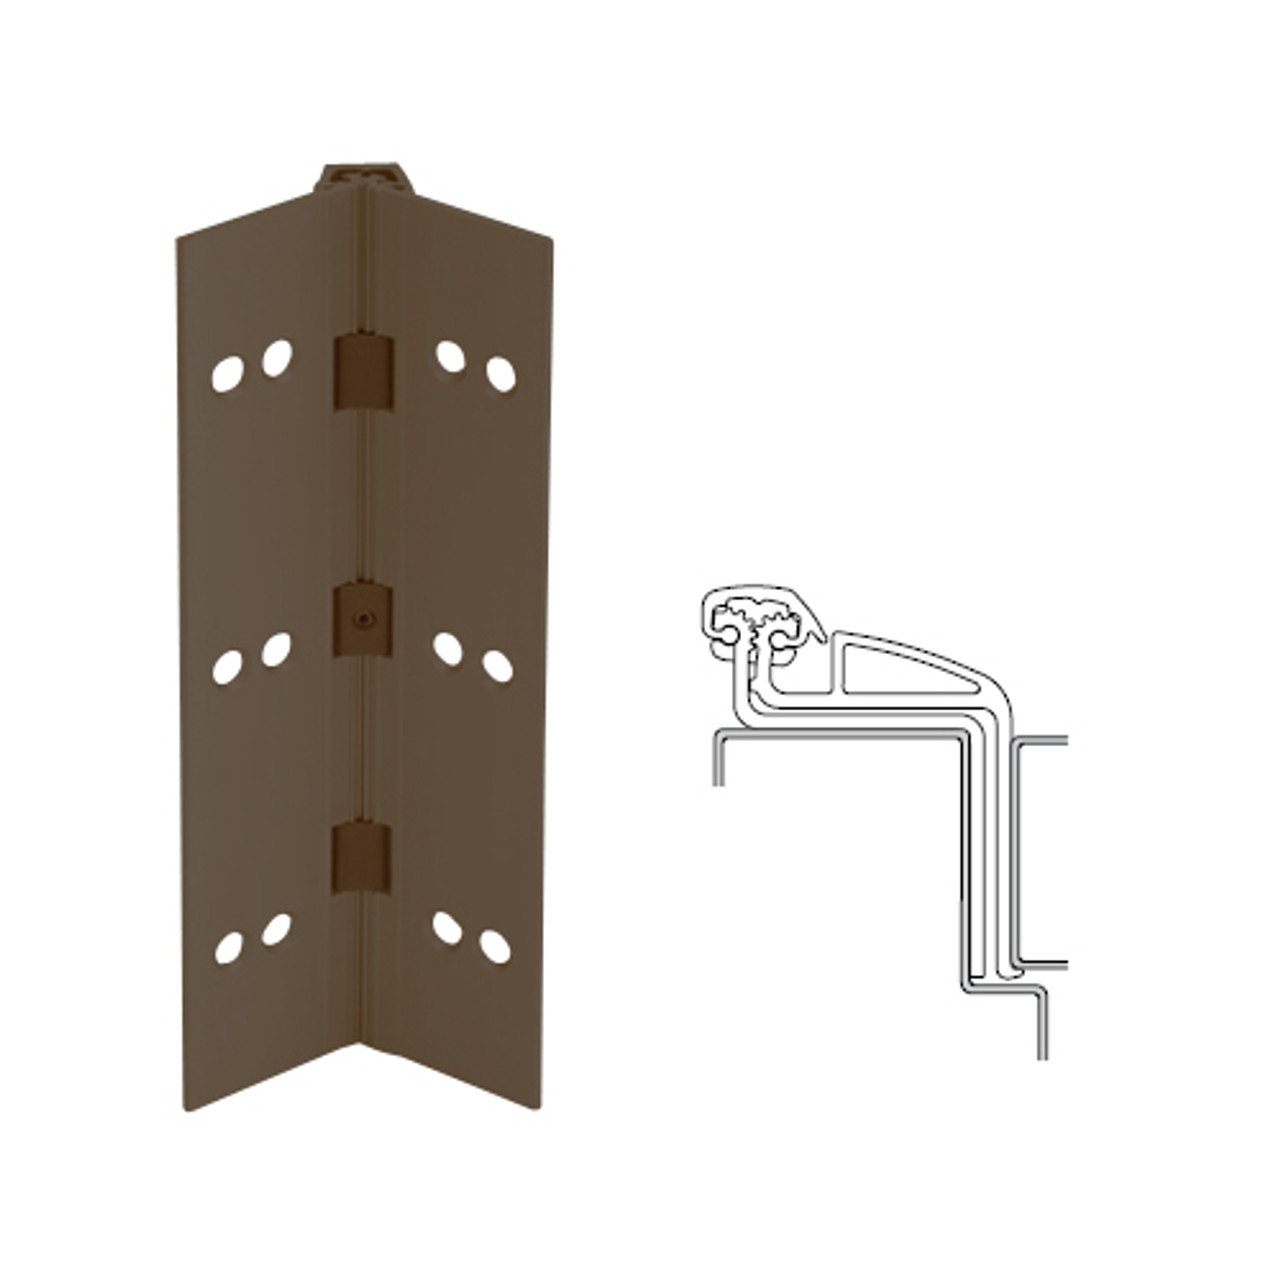 041XY-313AN-83-WD IVES Full Mortise Continuous Geared Hinges with Wood Screws in Dark Bronze Anodized